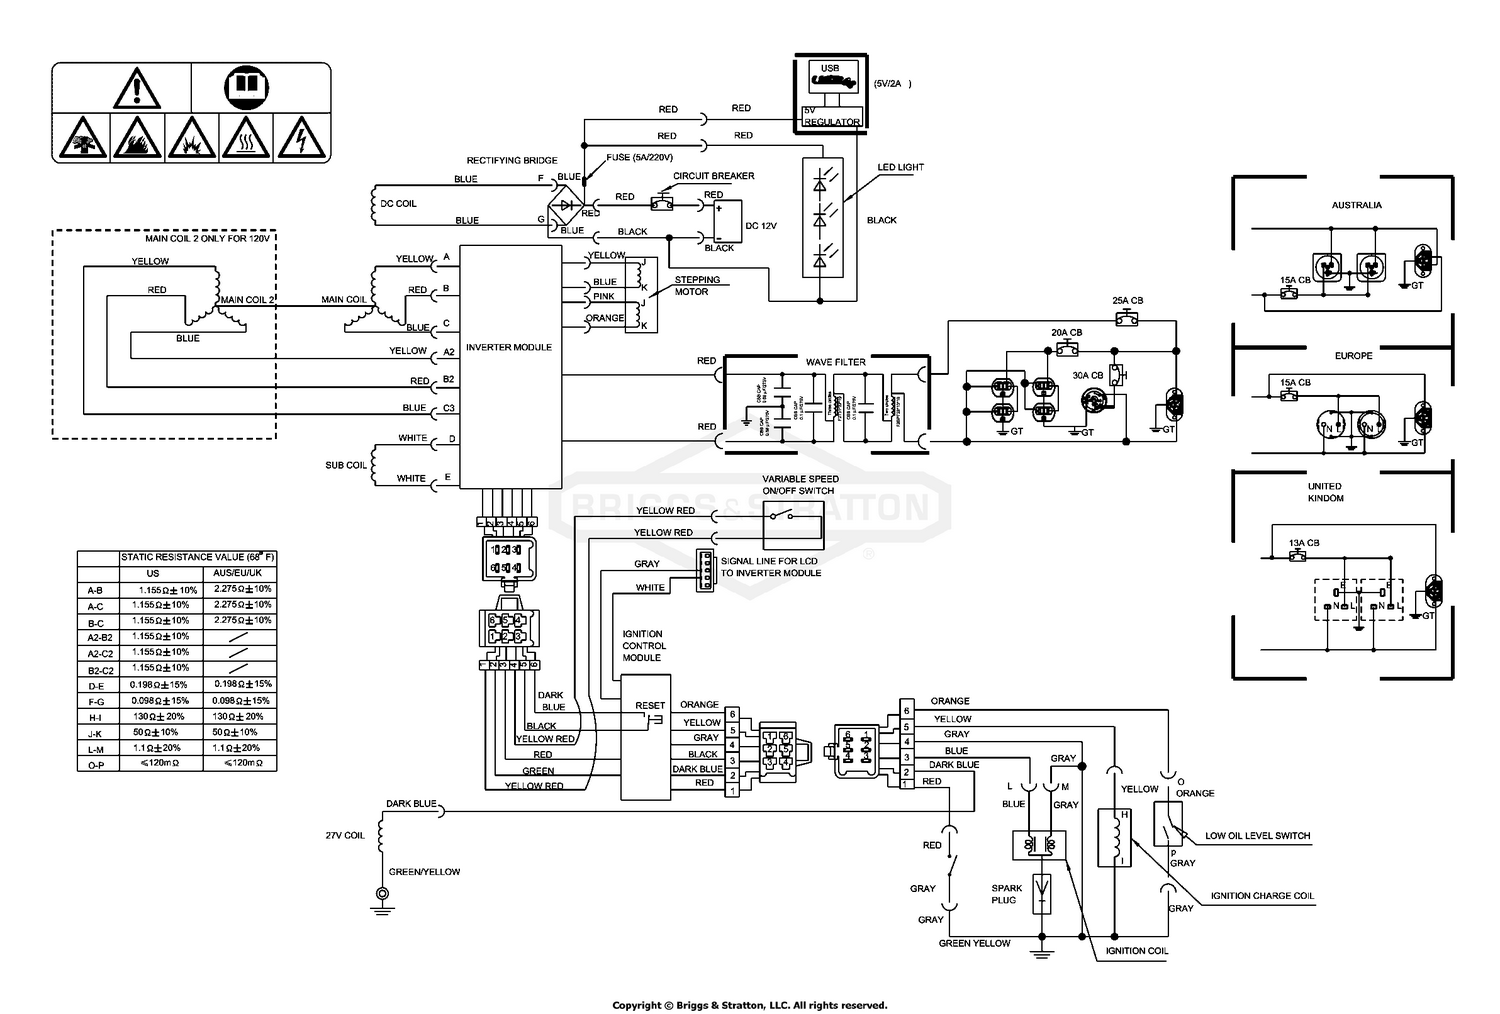 Briggs Amp Stratton Power Products Del 26072017021729 030545 01 For Snow Blower Wiring Diagram Schematic 319944ws